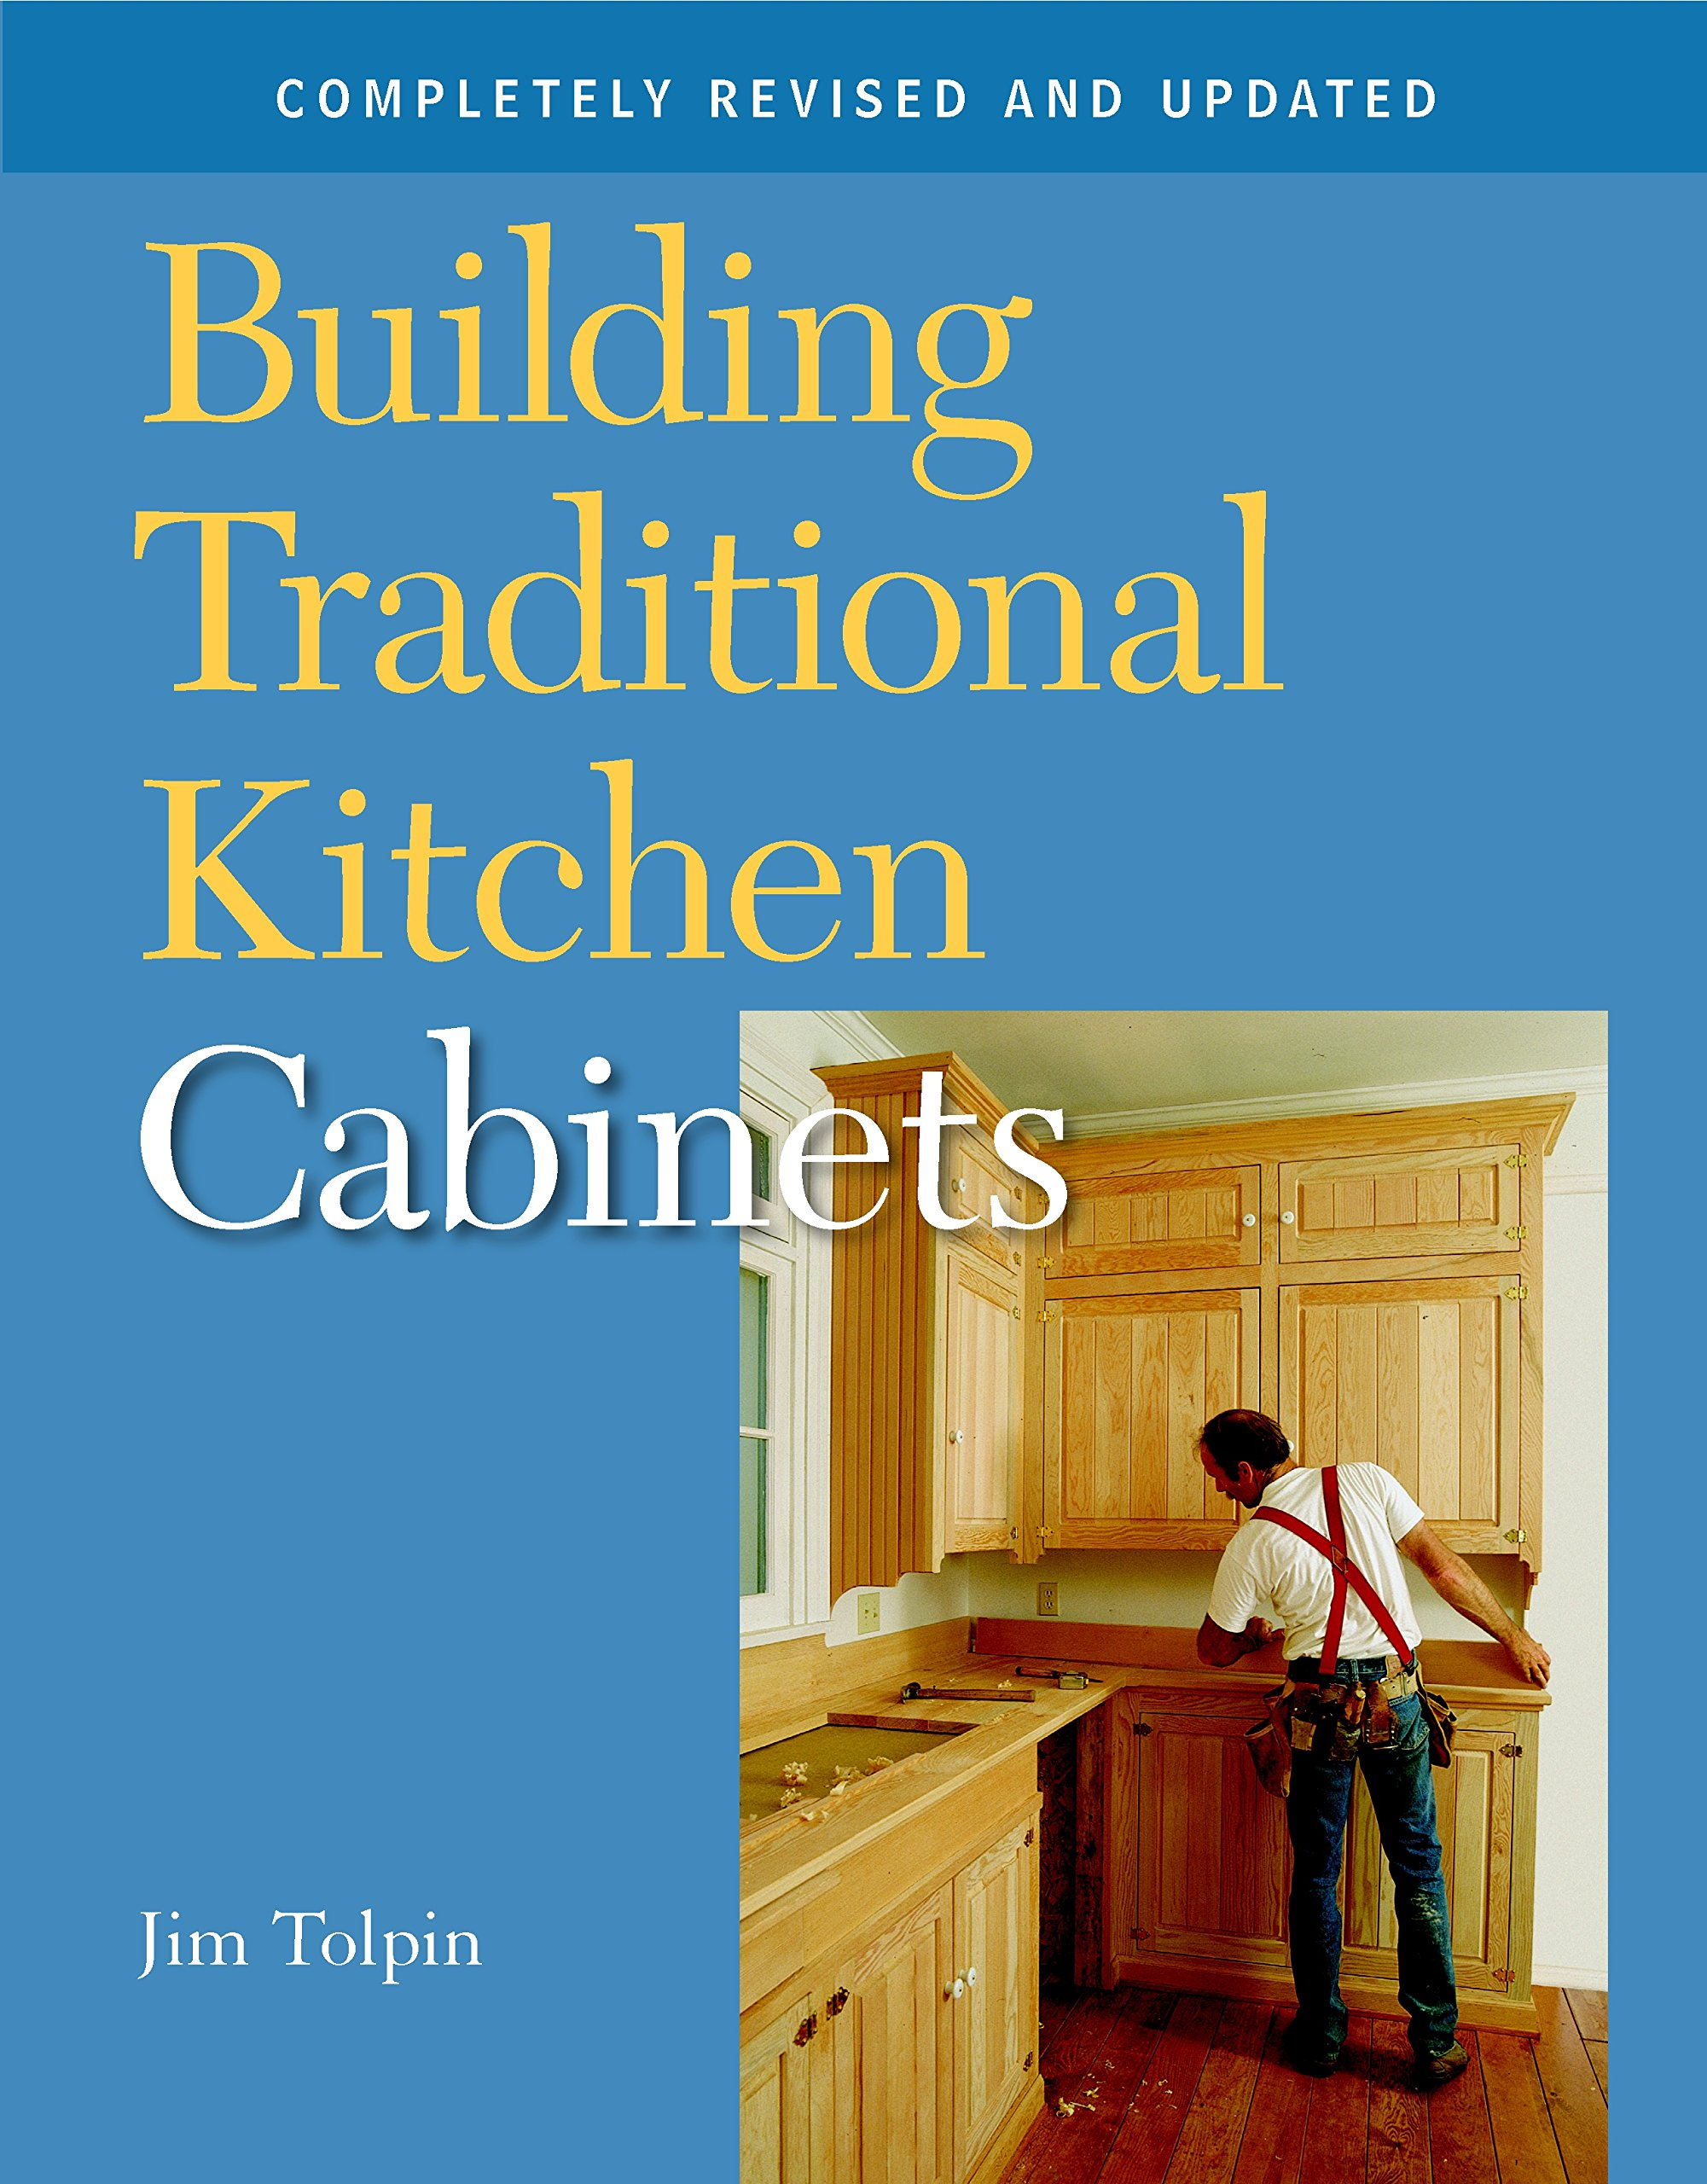 Building Traditional Kitchen Cabinets: Completely Revised and ...